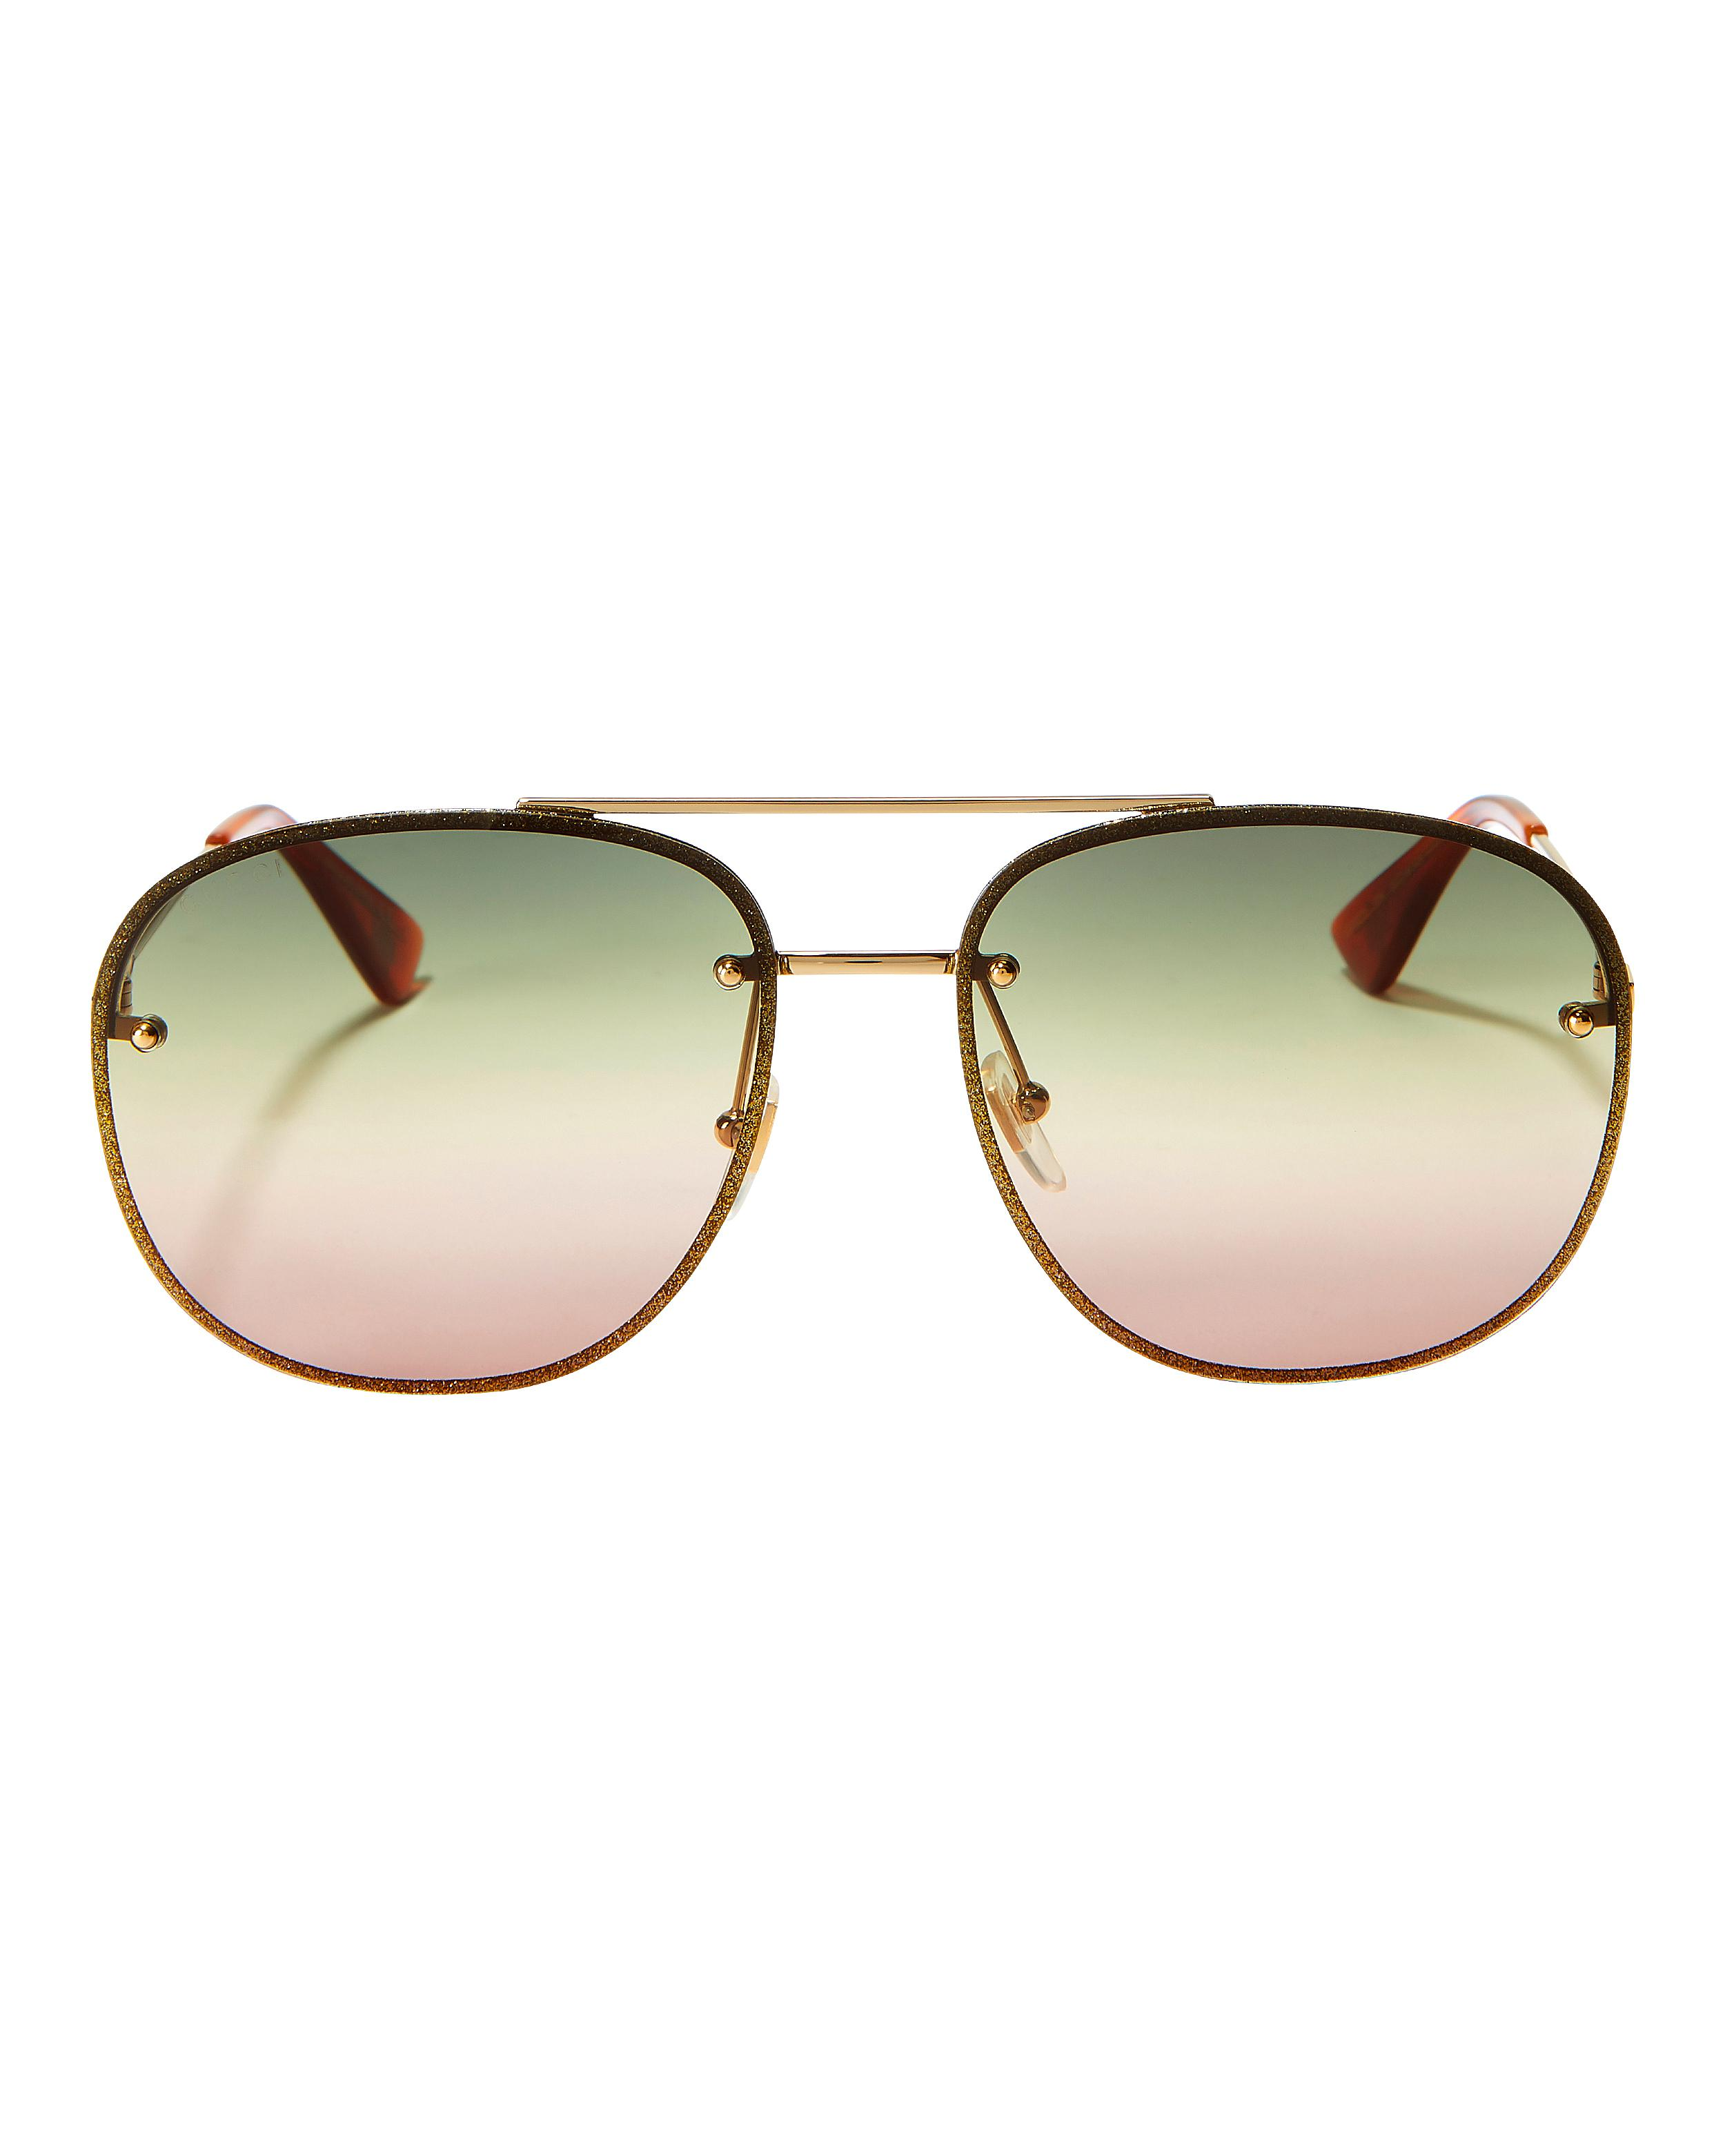 77d9797233663 Lyst - Gucci Glitter Aviator Sunglasses in Metallic